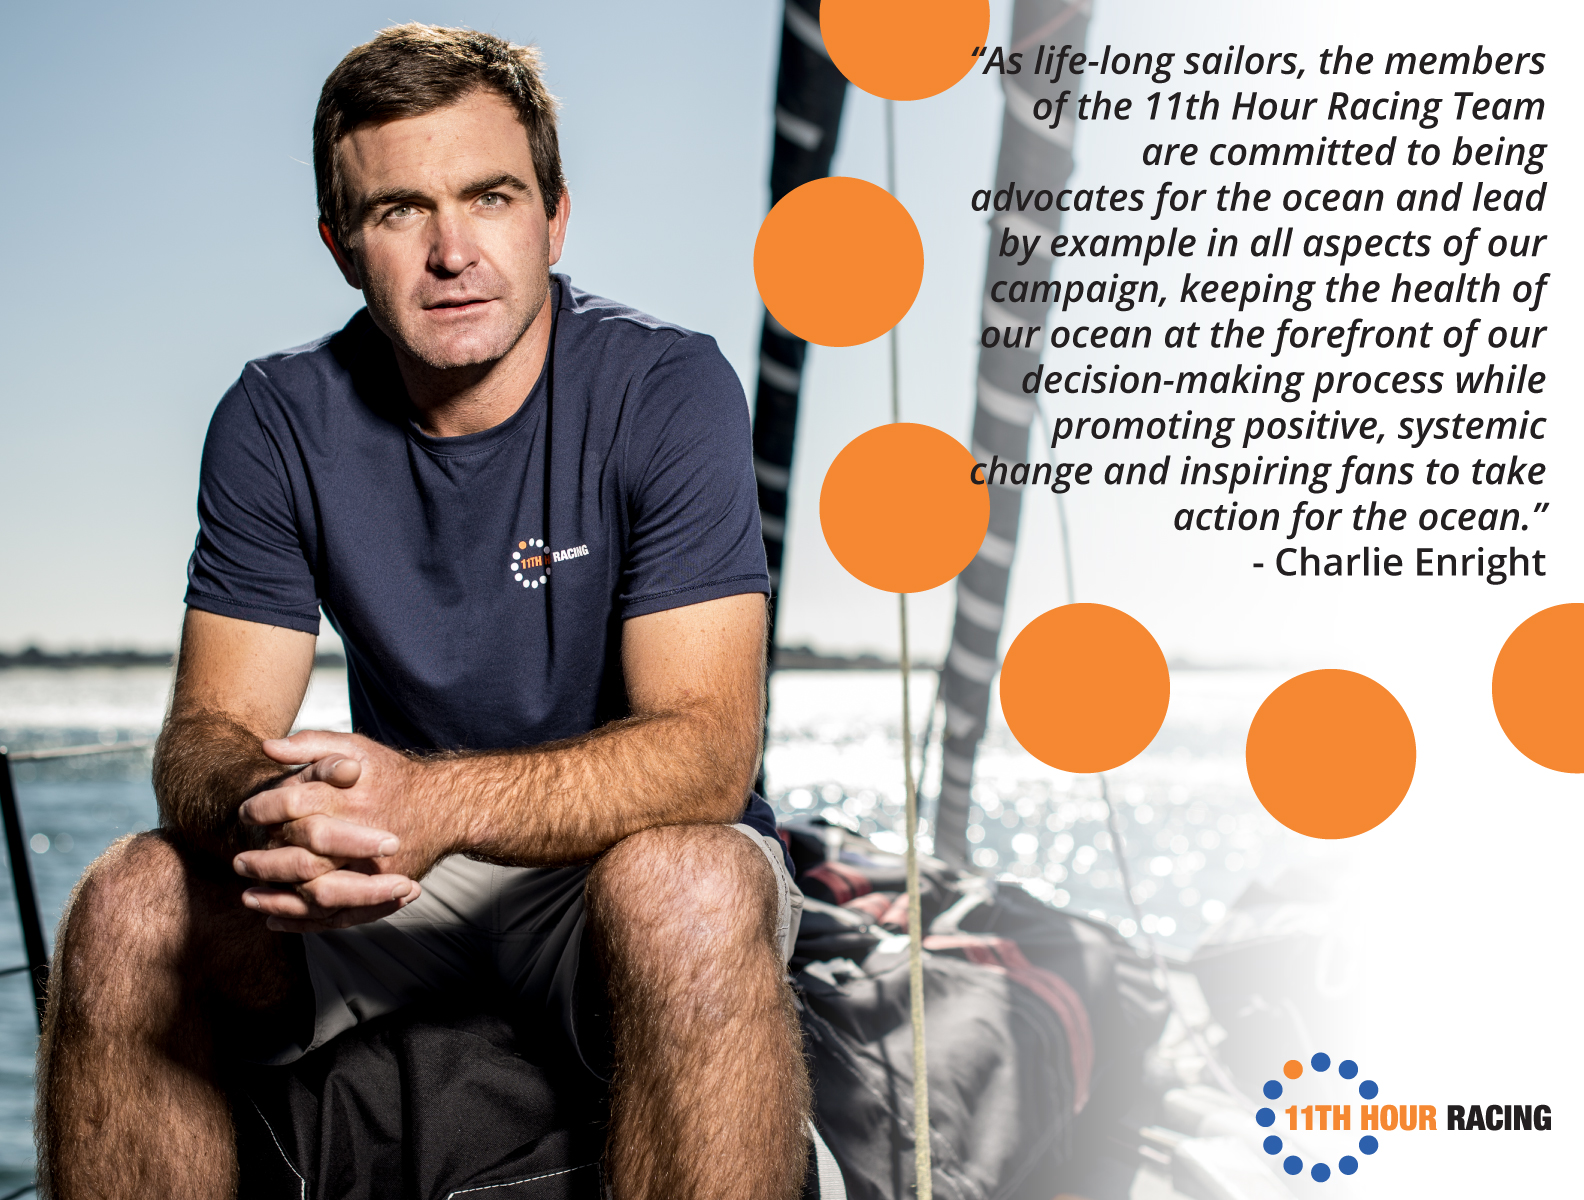 Charlie Enright, 11th Hour Racing, Sailing, IMOCA 60, Transat Jaques Vabre,